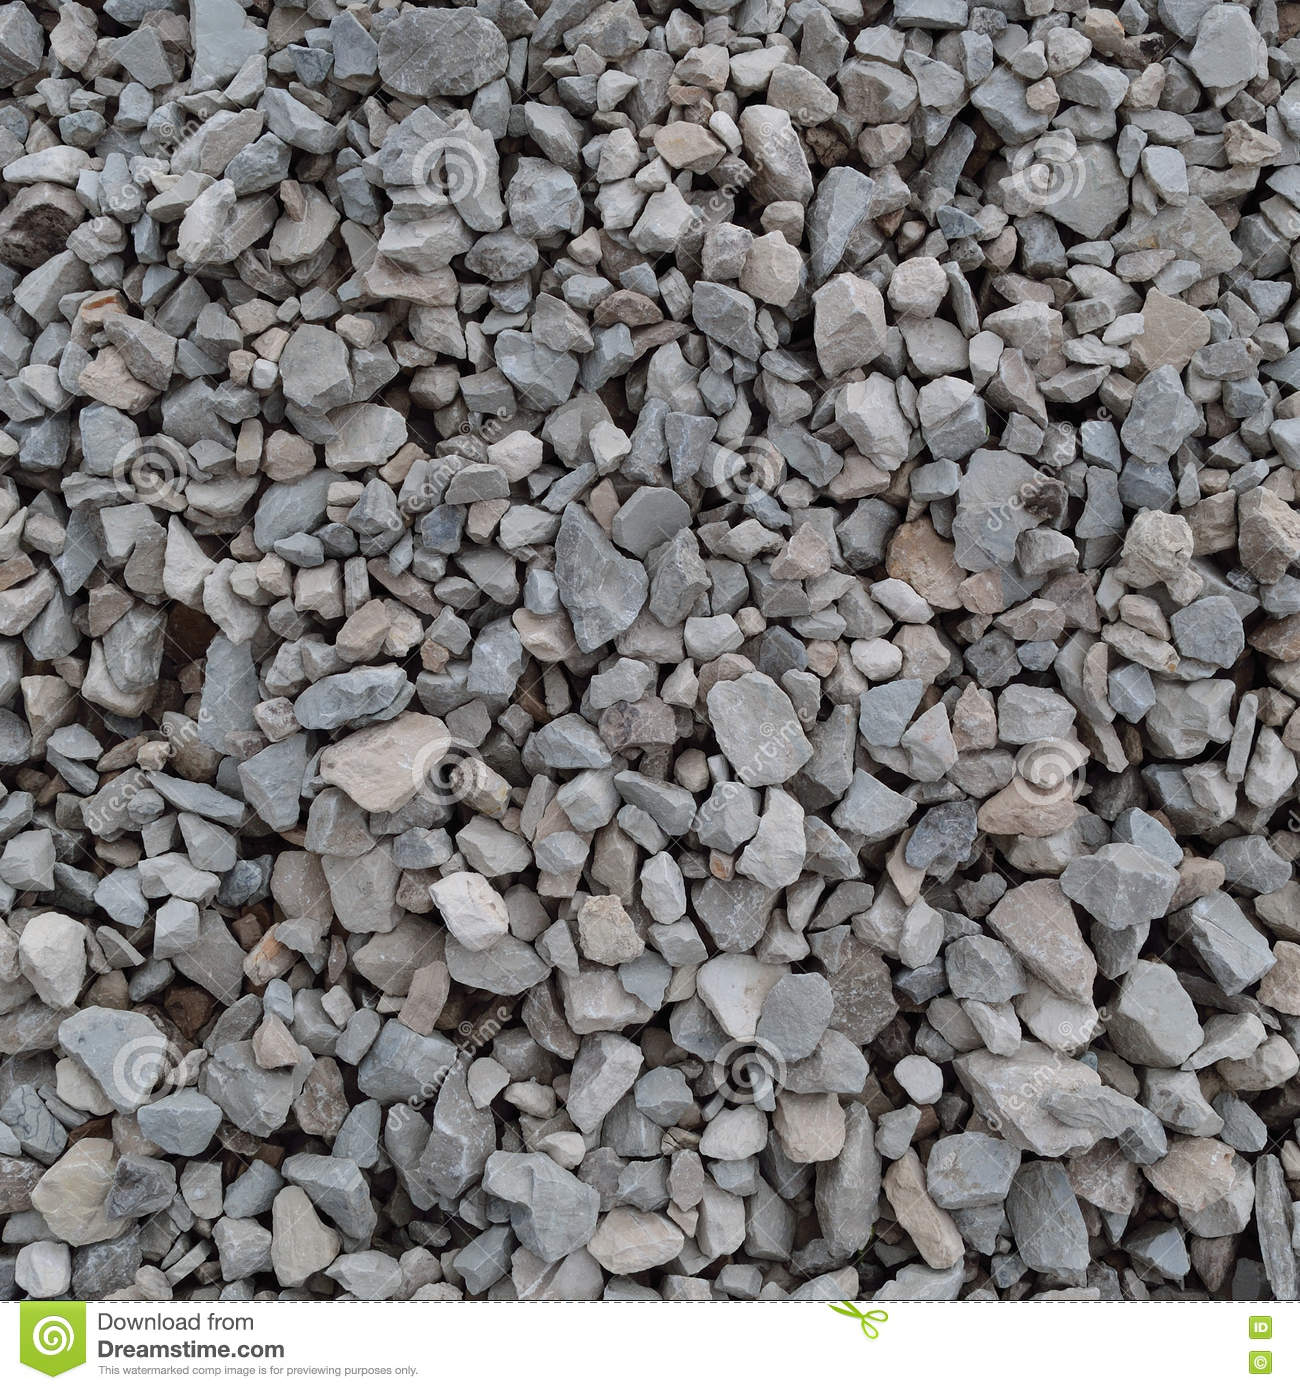 Granite Stone Gravel : Abstract grey and beige gravel stone background crushed